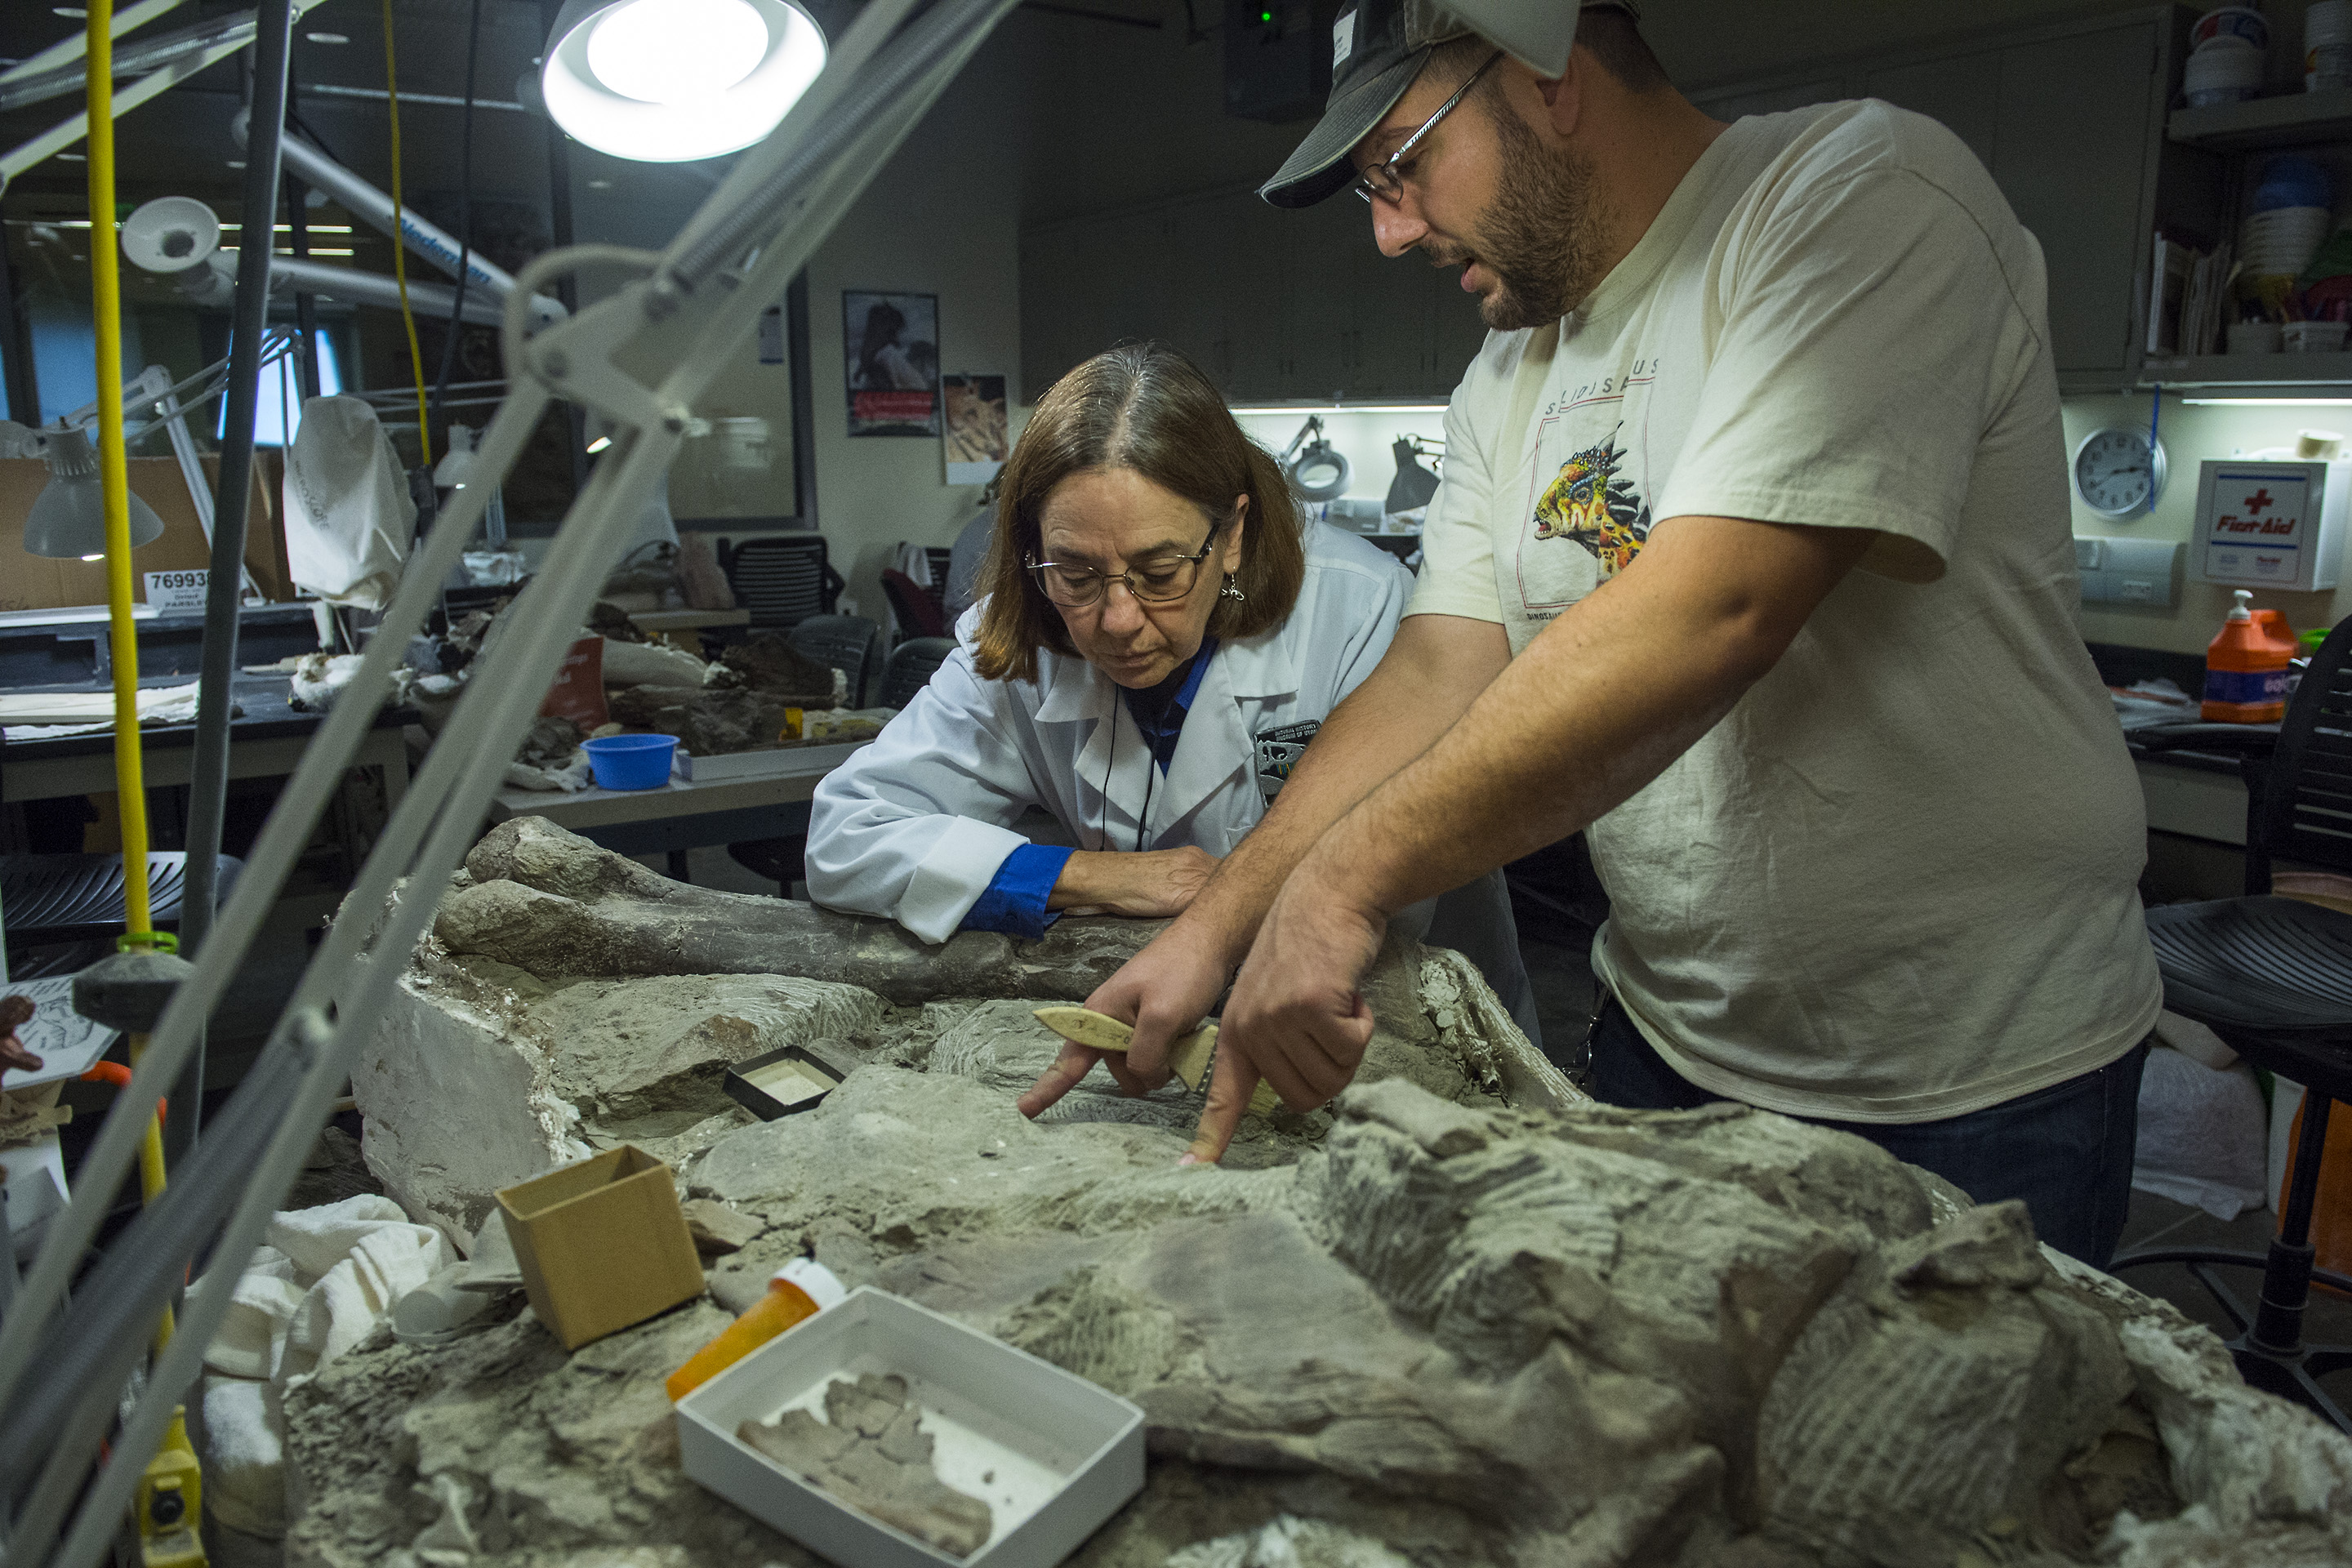 Scientists decry Trump's move to strip fossil treasures from Utah's Grand Staircase monument